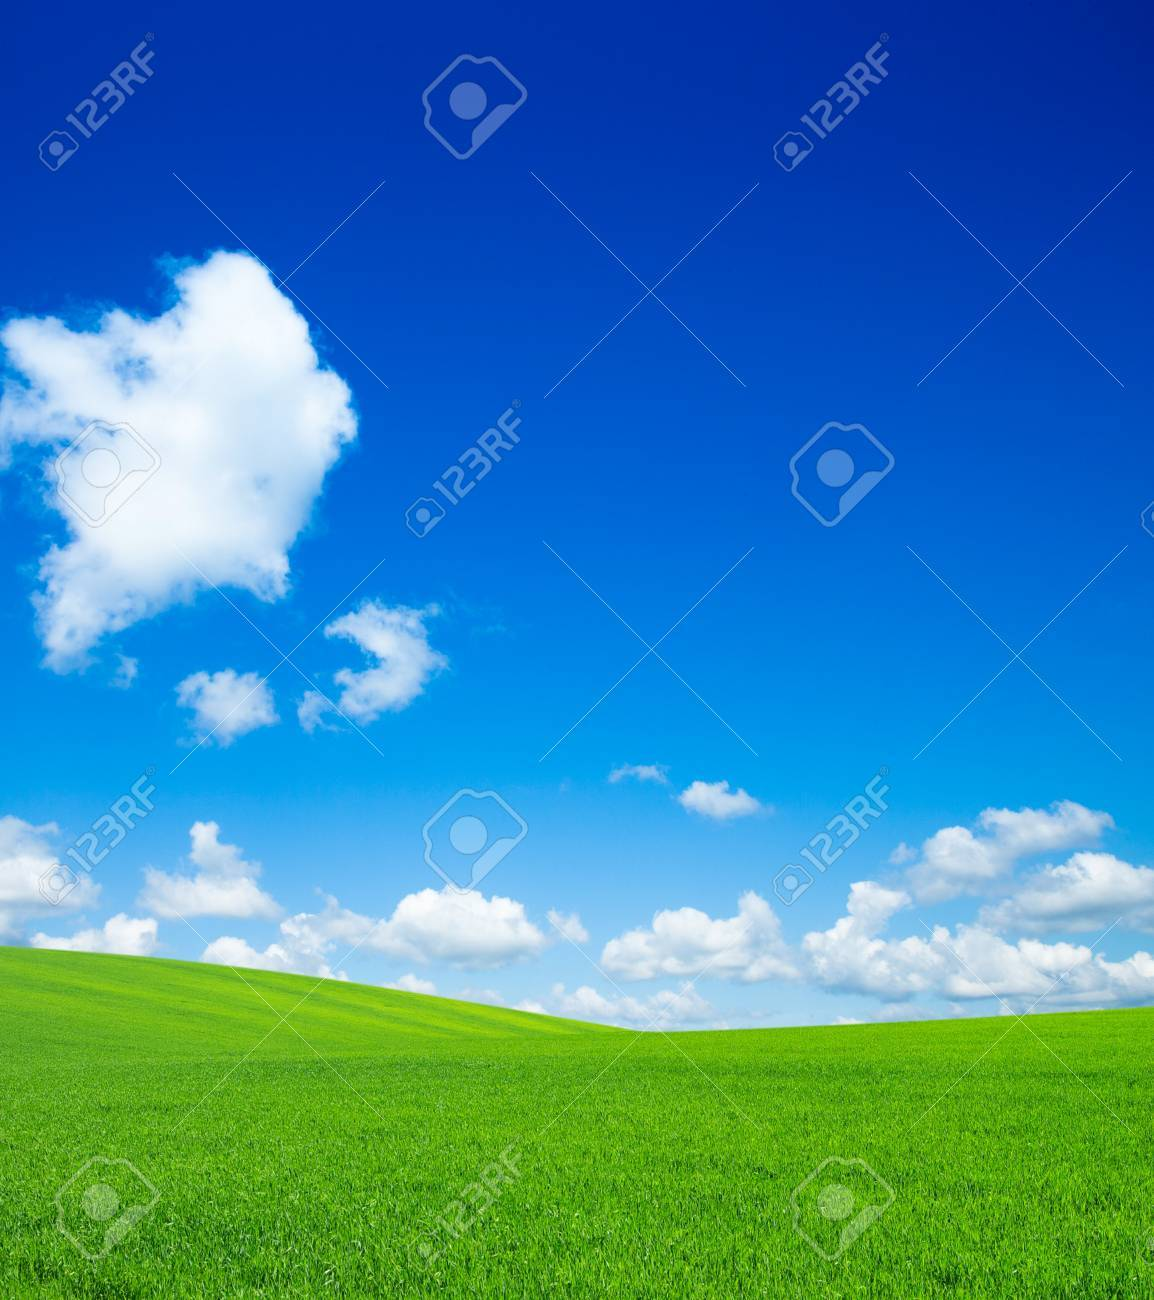 green field and blue sky - 39605387